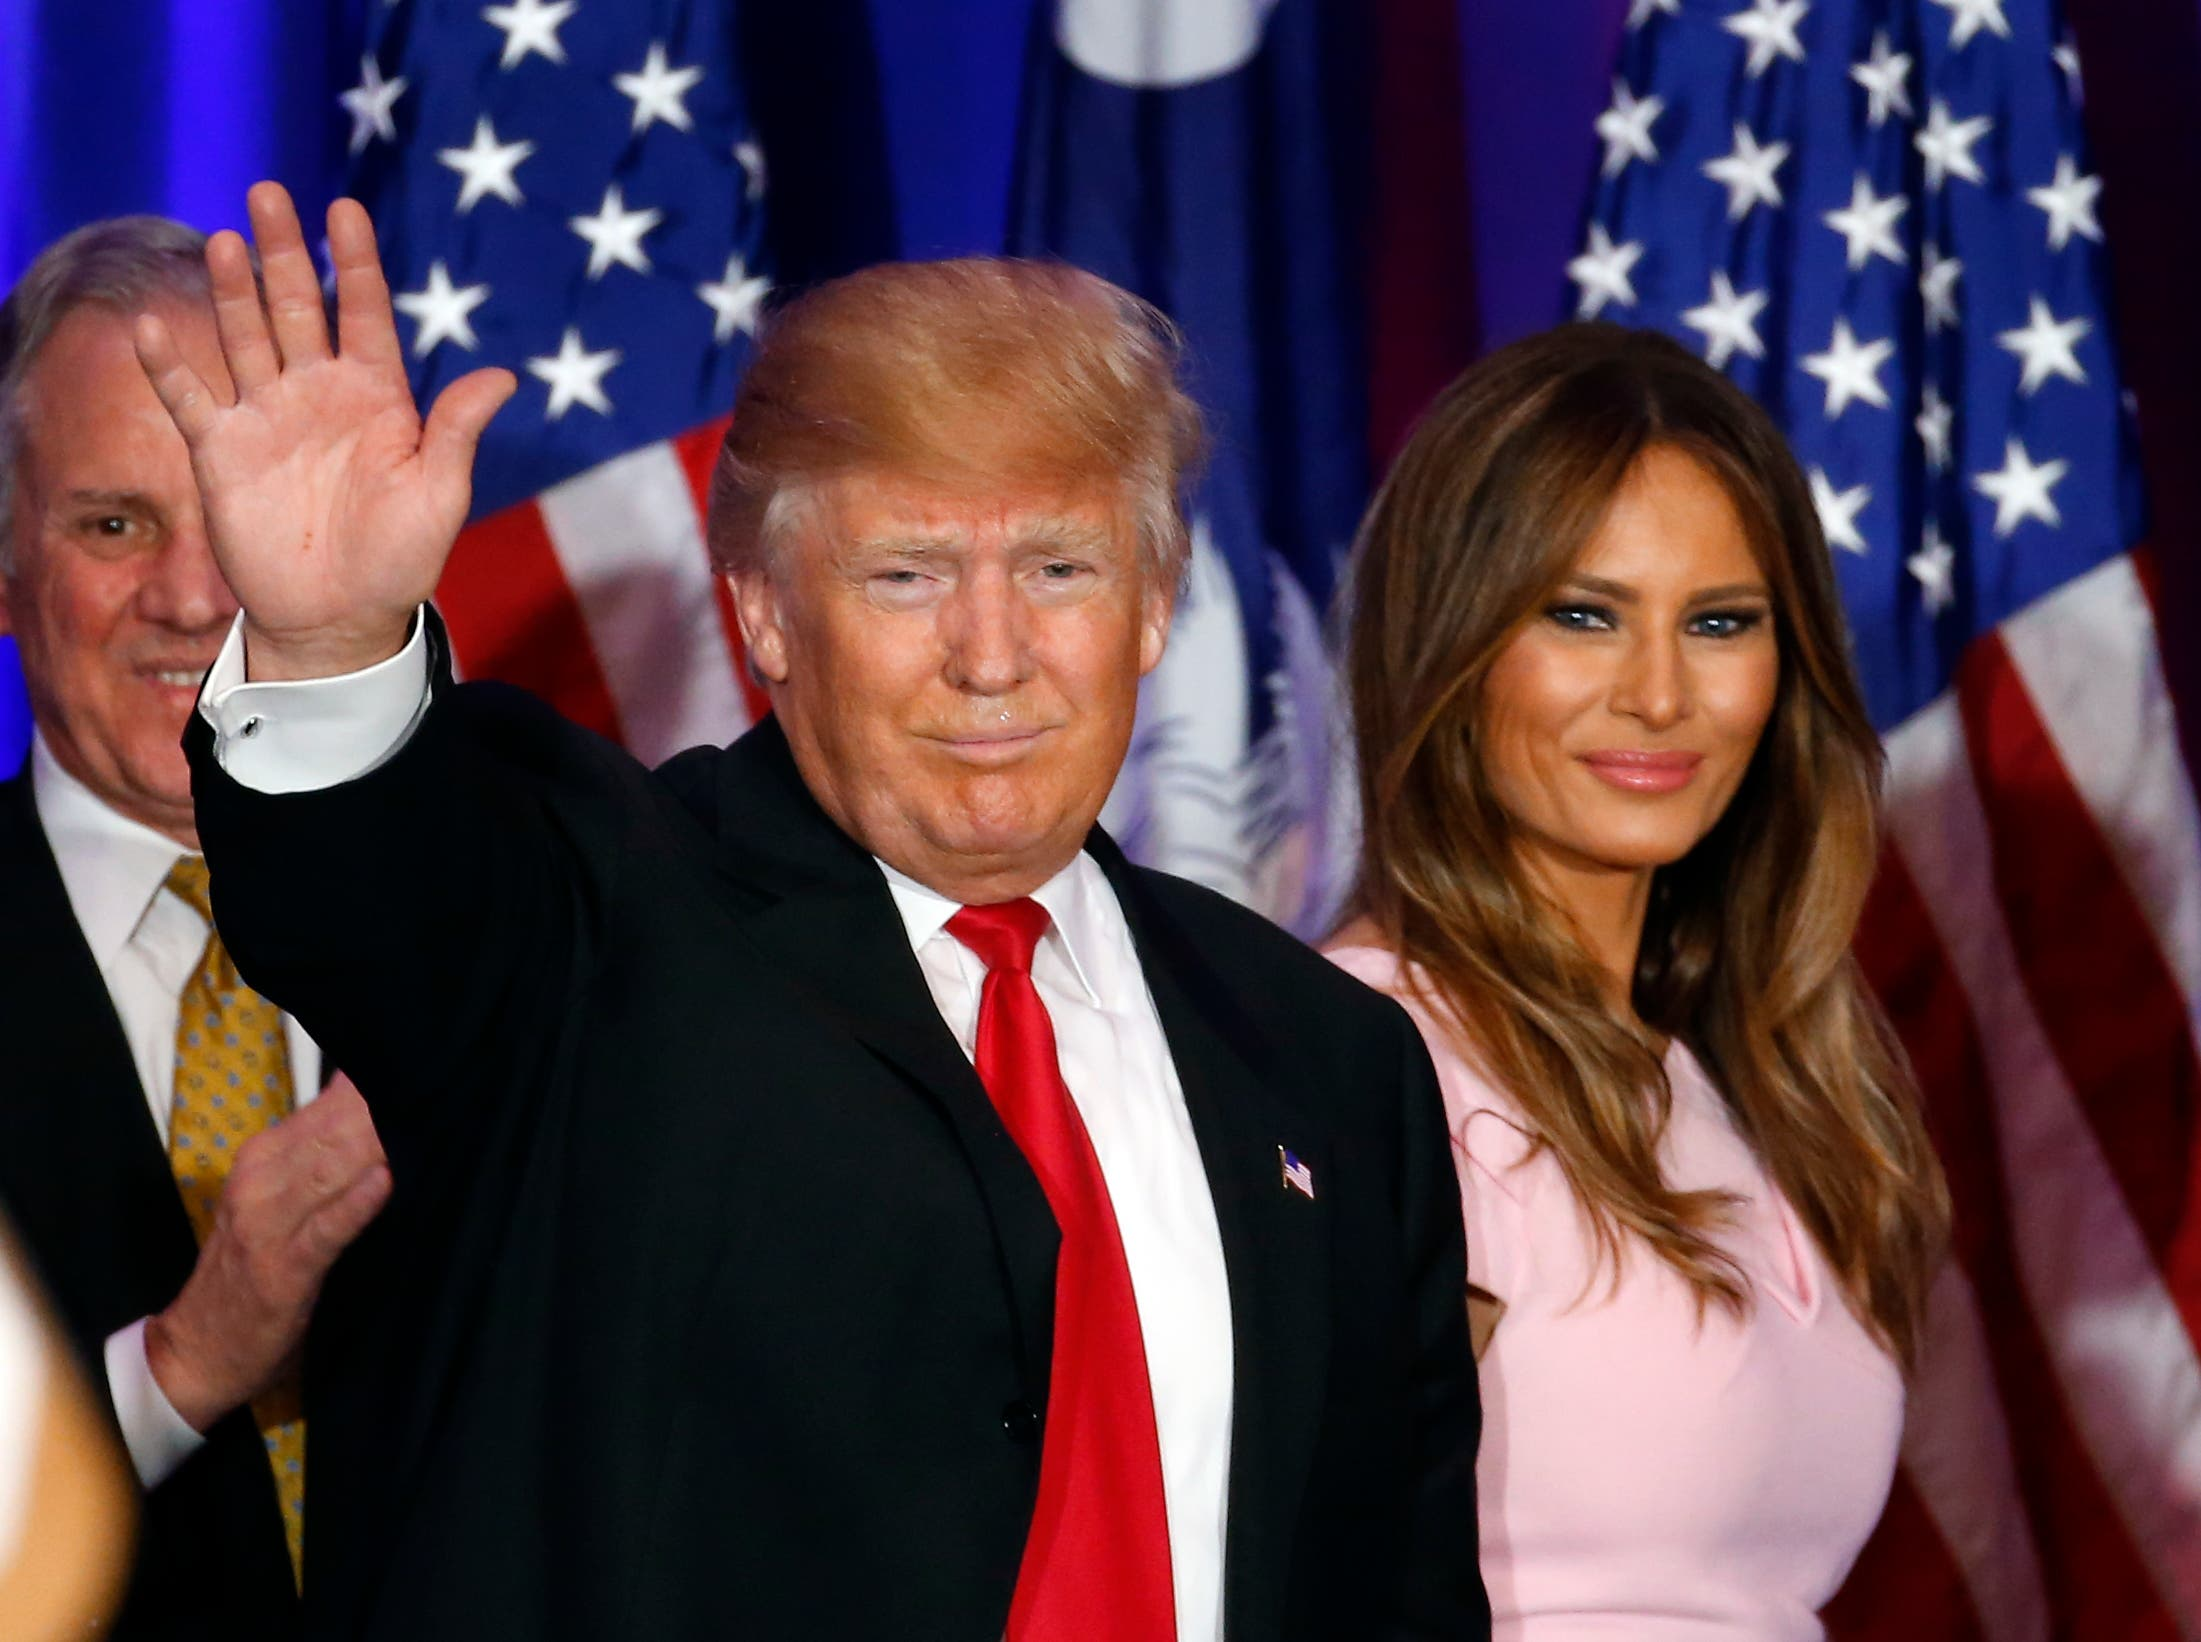 Despite Trump's solitary regret in the 'women department,' the Republican presidential frontrunner, seen at a rally in Feb. 20, 2016, says he is very satisfied in his marriage to Slovenia-born Melania Trump (R), who is 24 years his junior (AP)